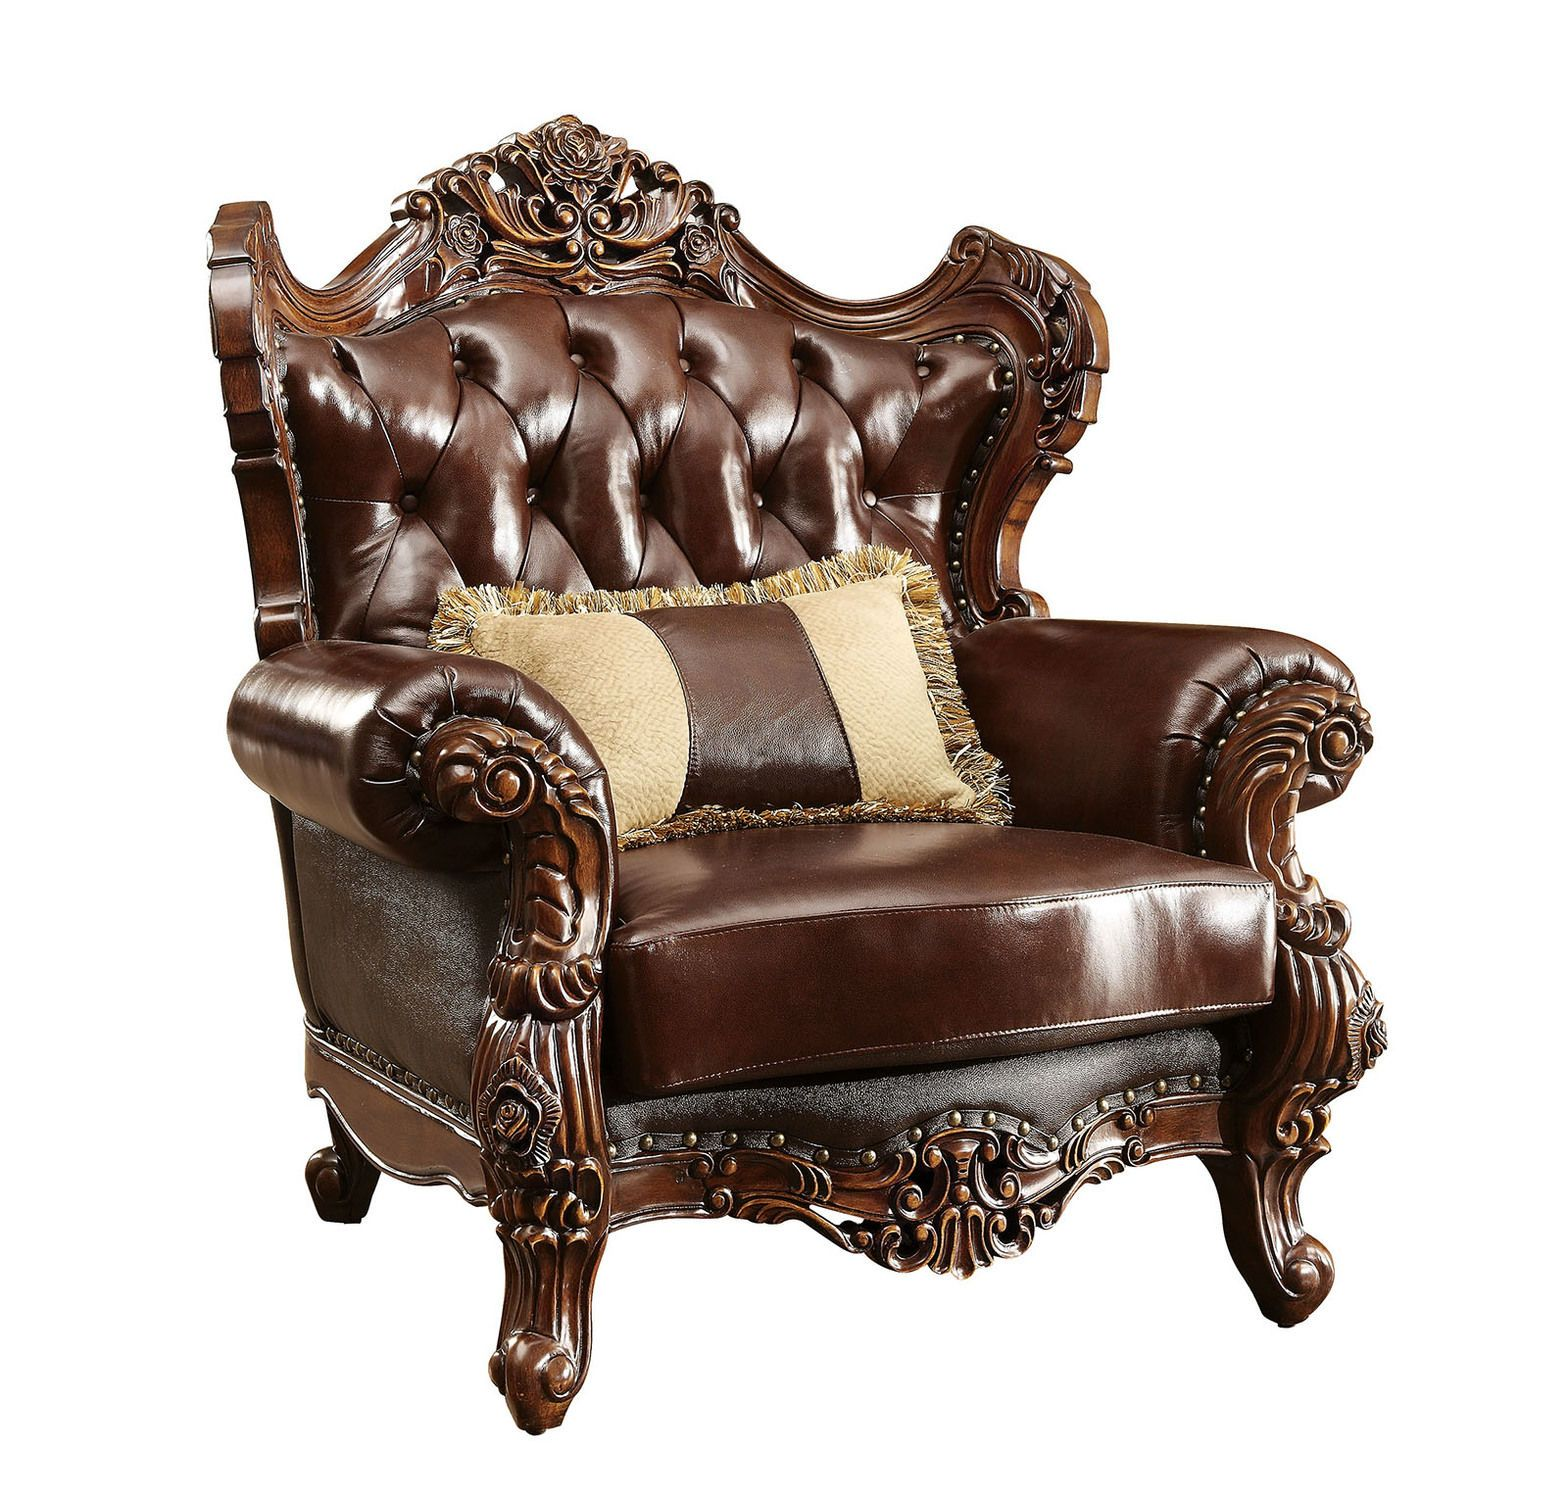 Jericho Chair Brown leather chairs, Armchair, Chair, a half